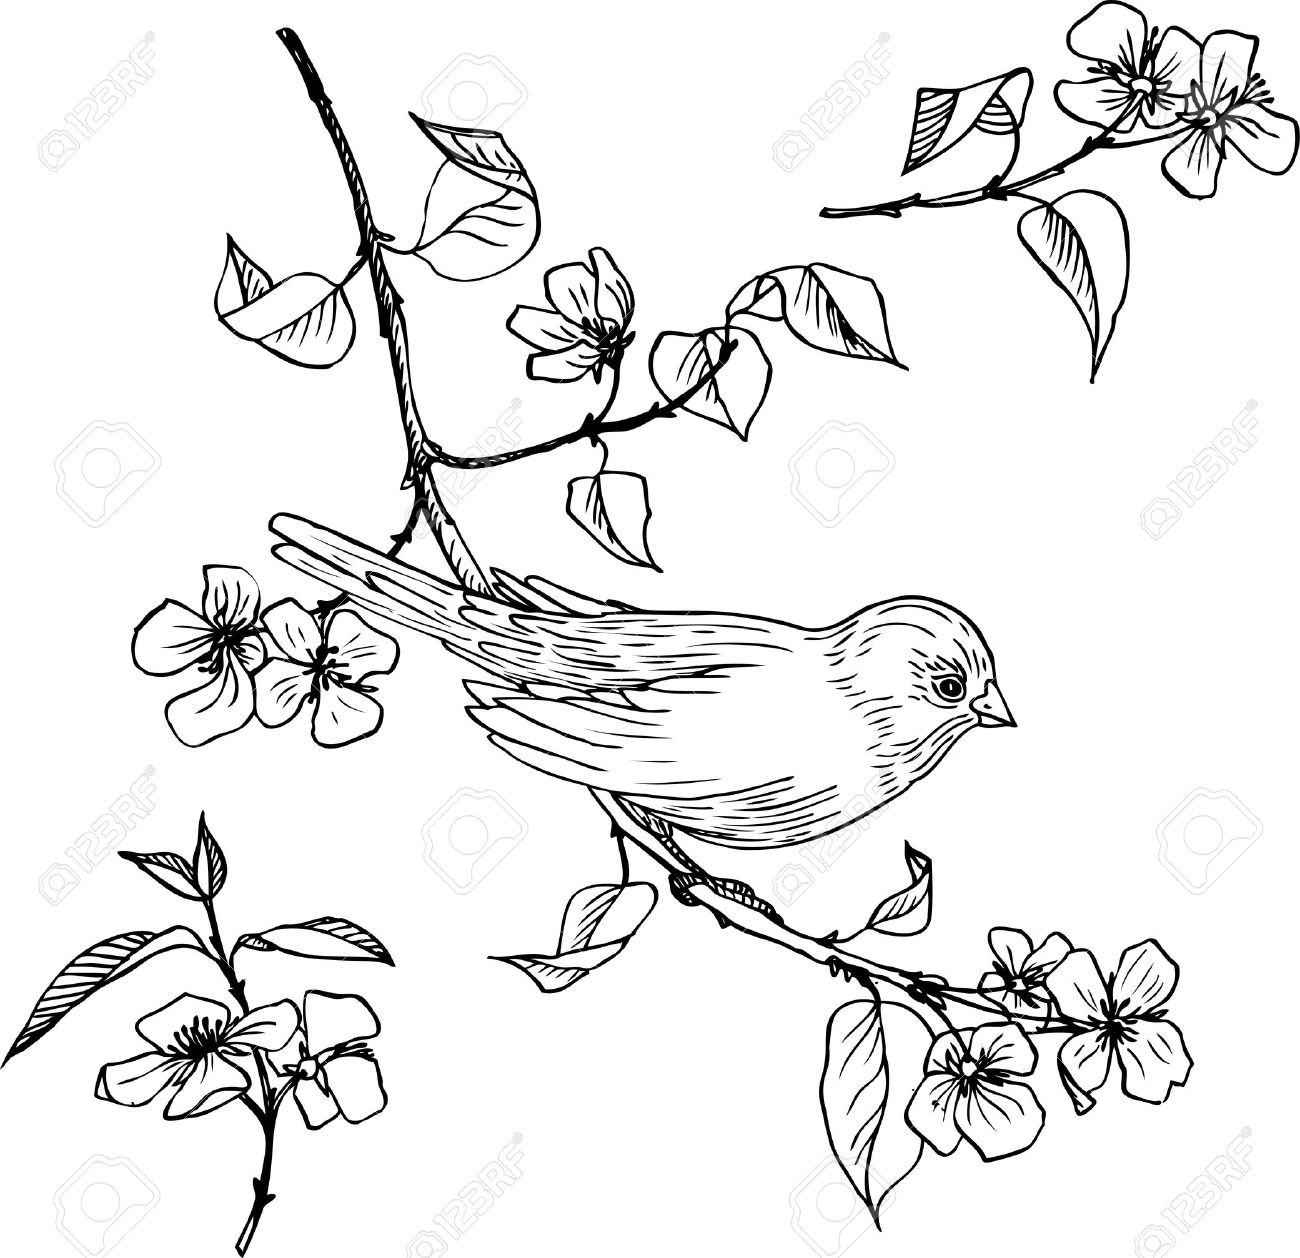 1300x1258 Linear Drawing Bird At Branch With Flowers And Leaves, Set